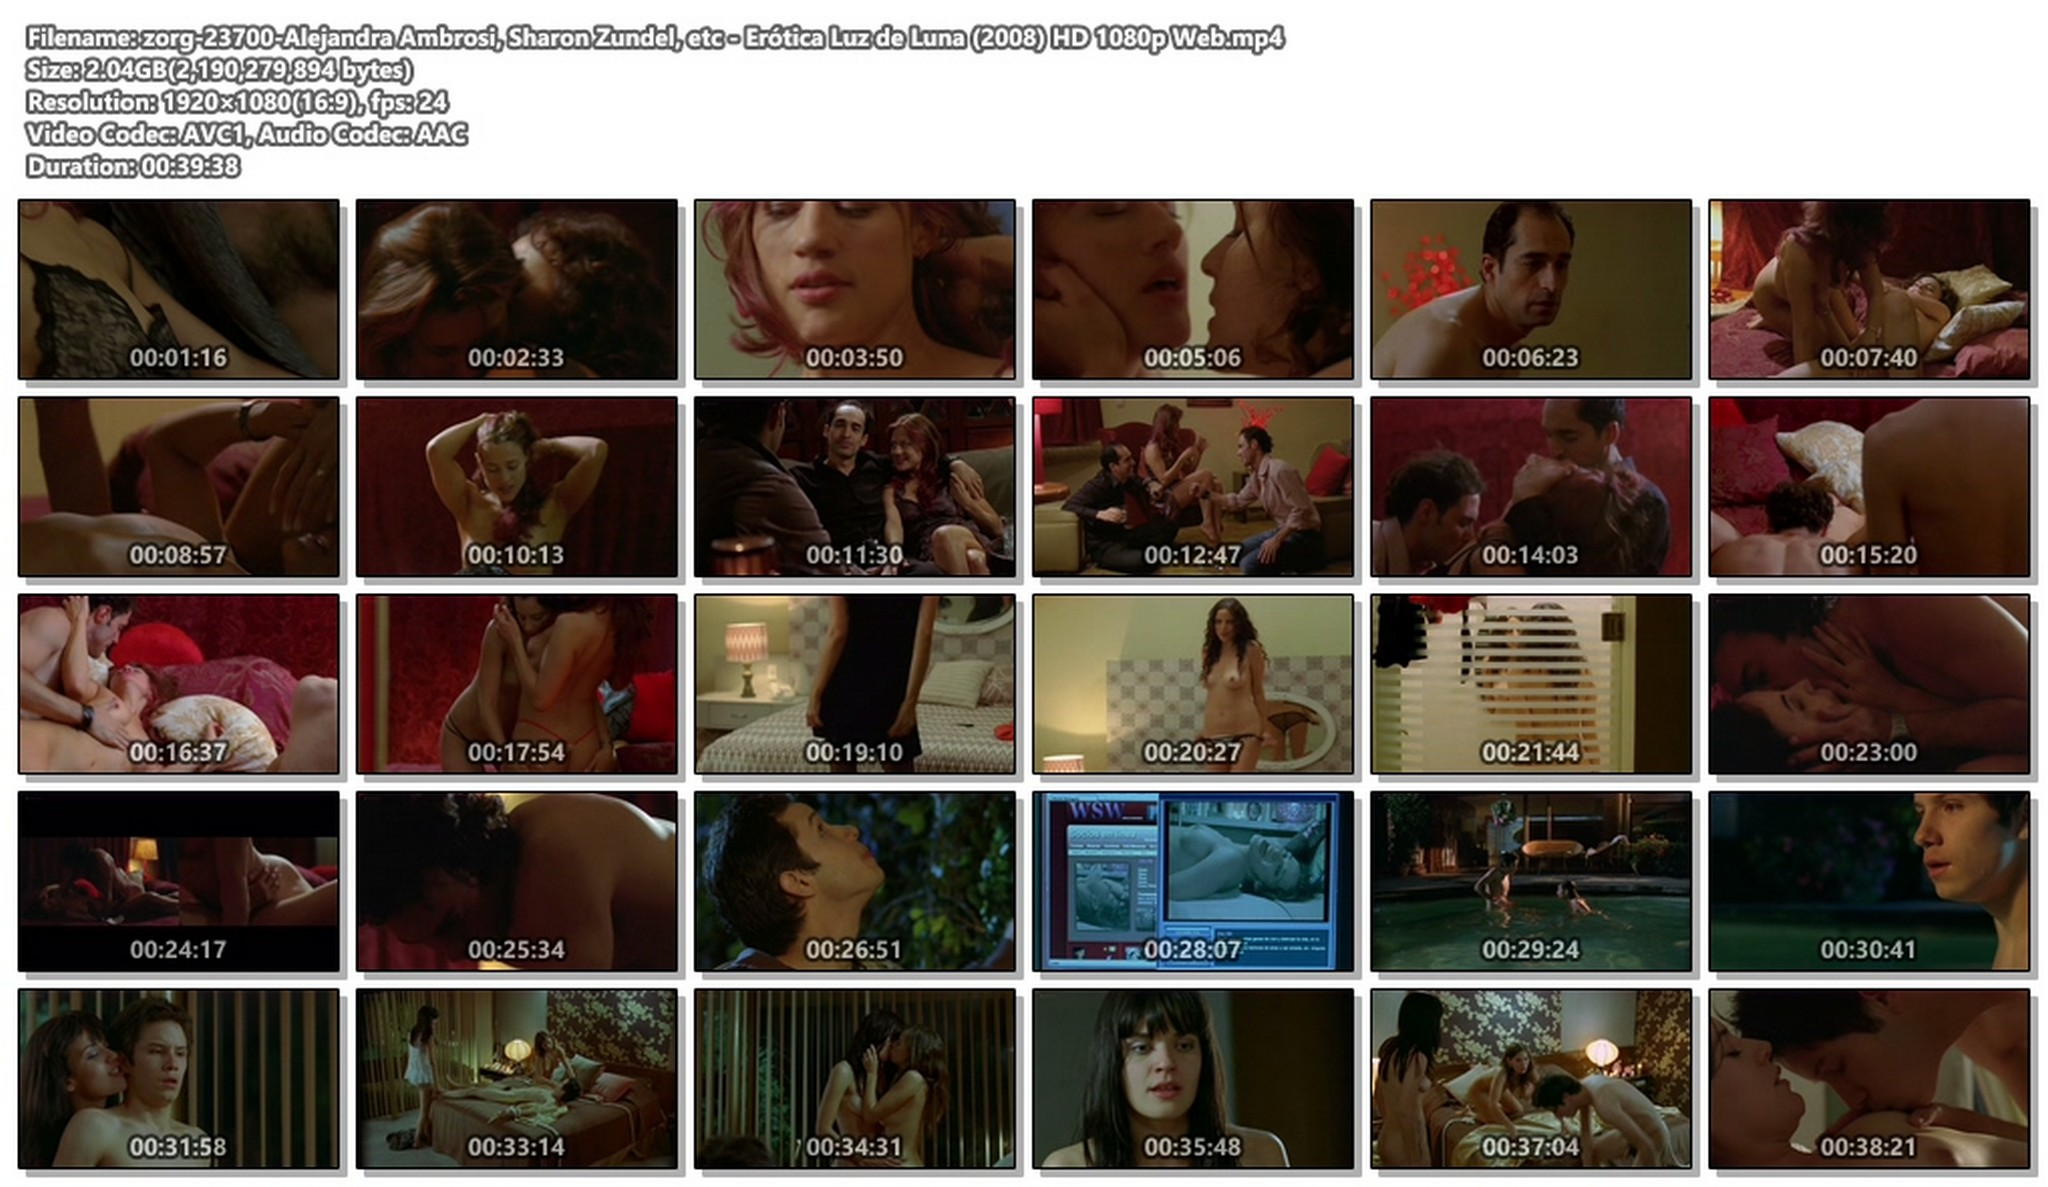 Alejandra Ambrosi nude sex Sharon Zundel and other nude lot of sex - Erótica: Luz de Luna (2008) HD 1080p Web (1)